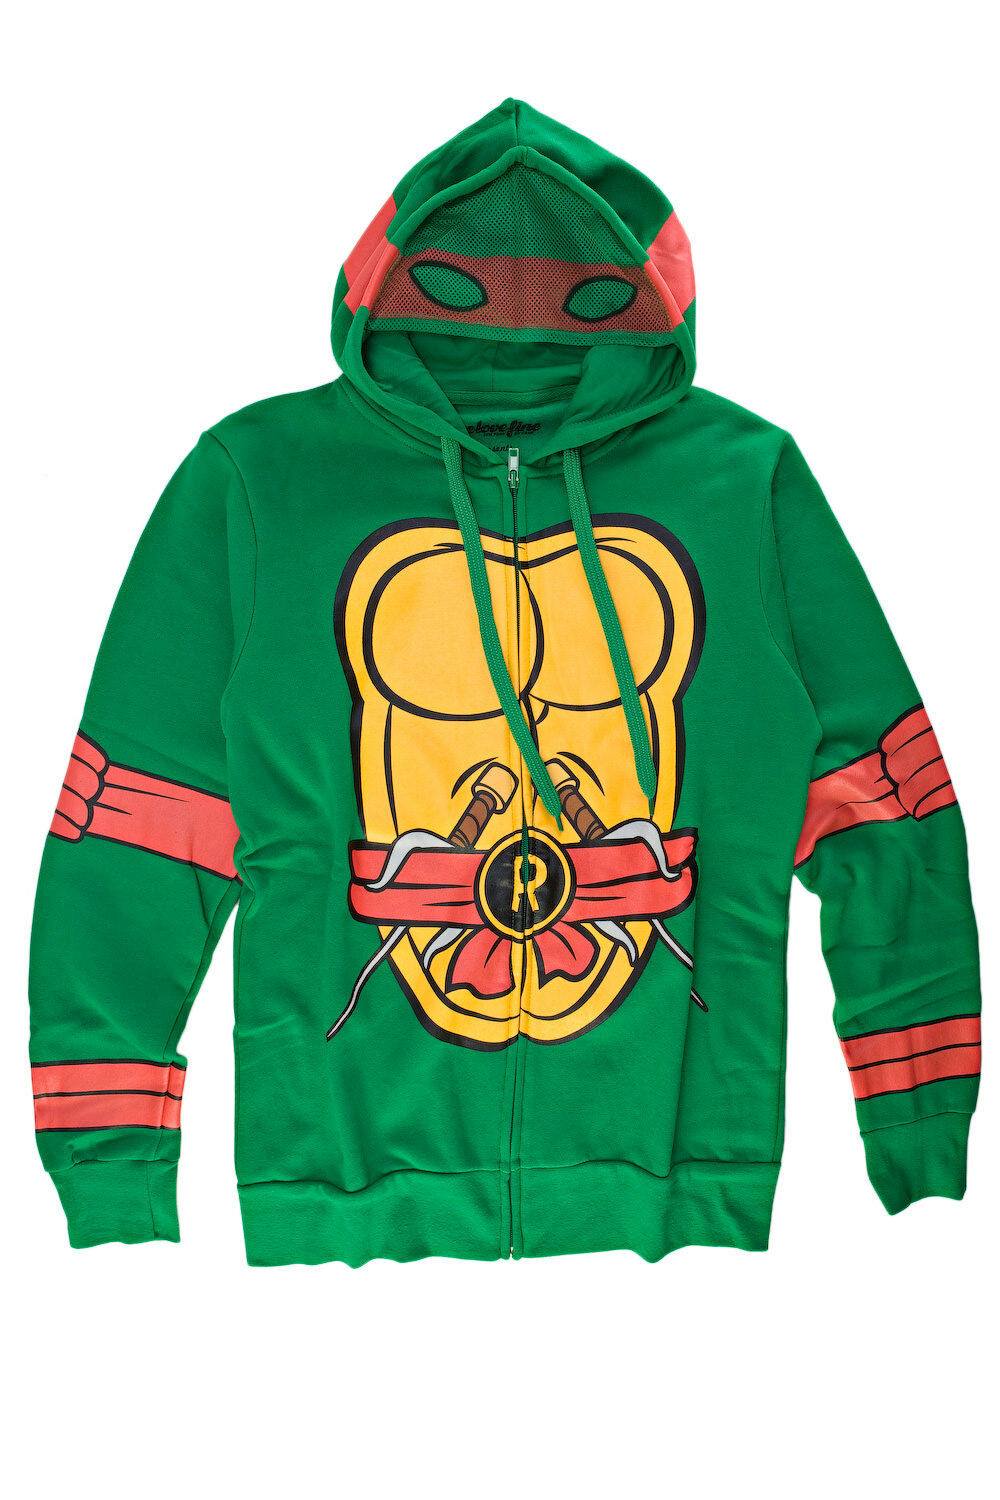 Teenage Mutant Ninja Turtles I Am Raphael  Herren Zip-Up Costume Hoodie